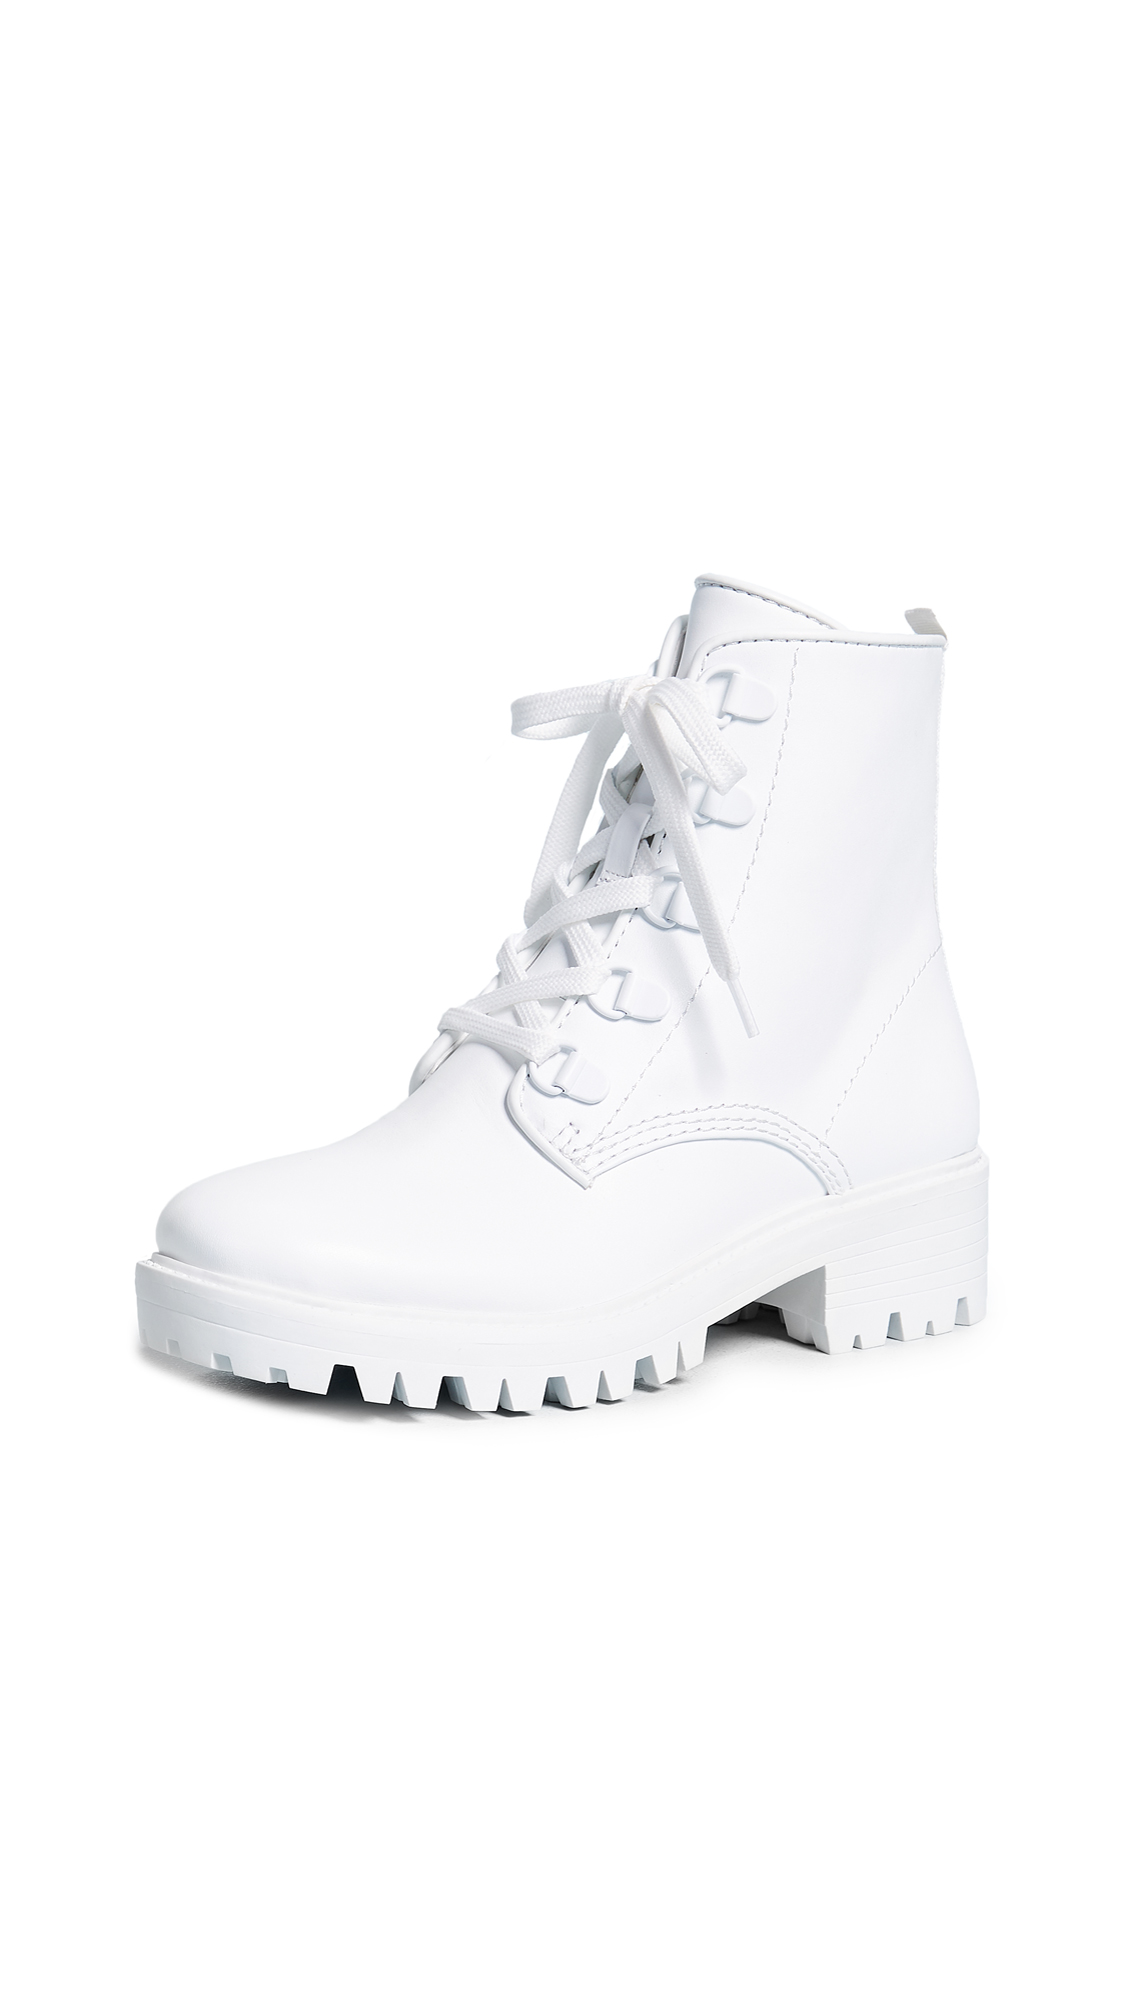 KENDALL + KYLIE Epic Combat Boots - White